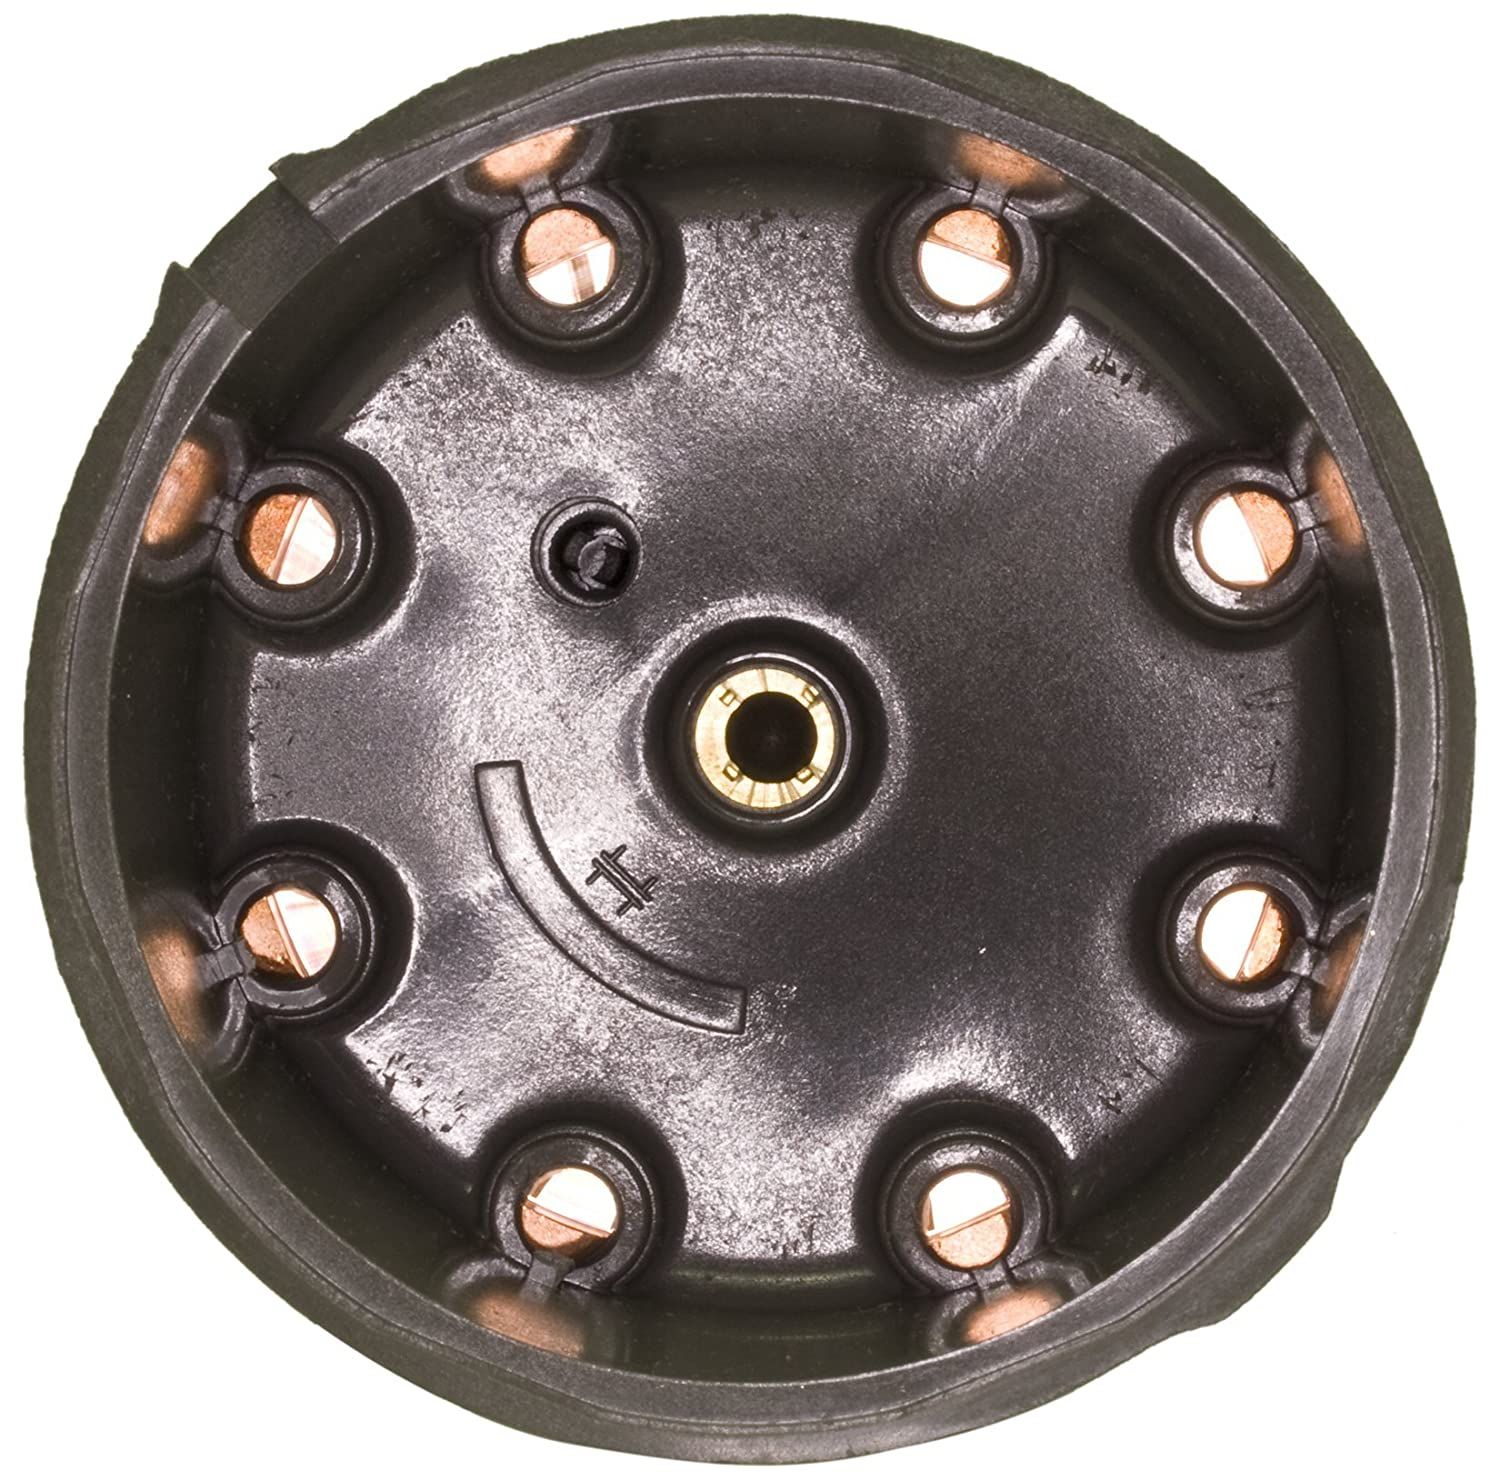 WVE by NTK 5D1090A Distributor Cap